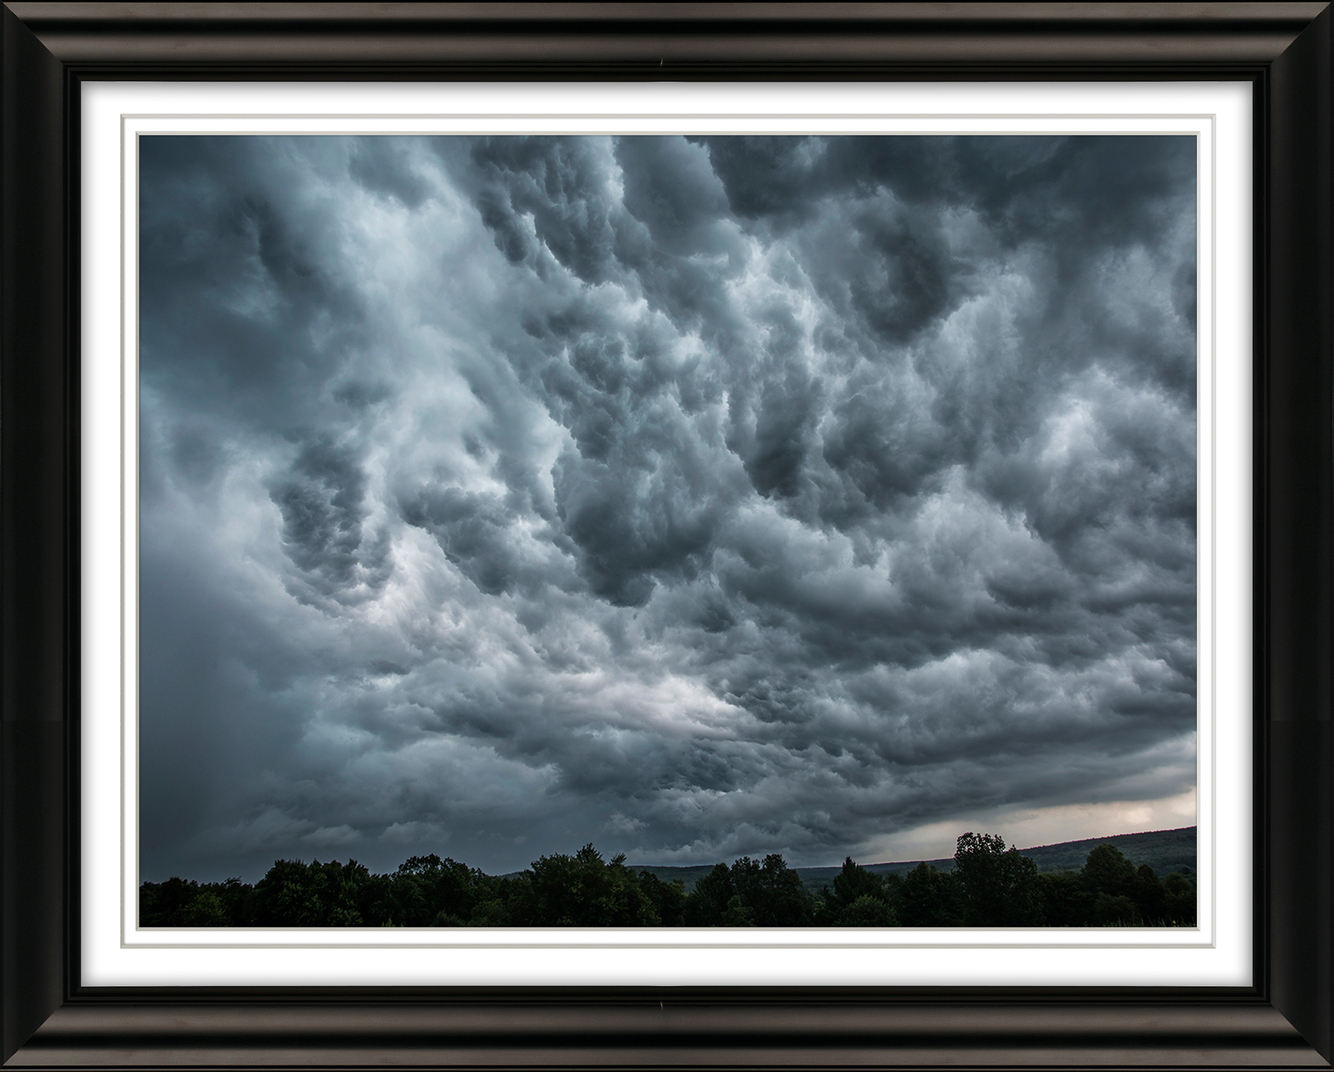 #5504 Roiling Clouds Before Thunderstorm .jpg